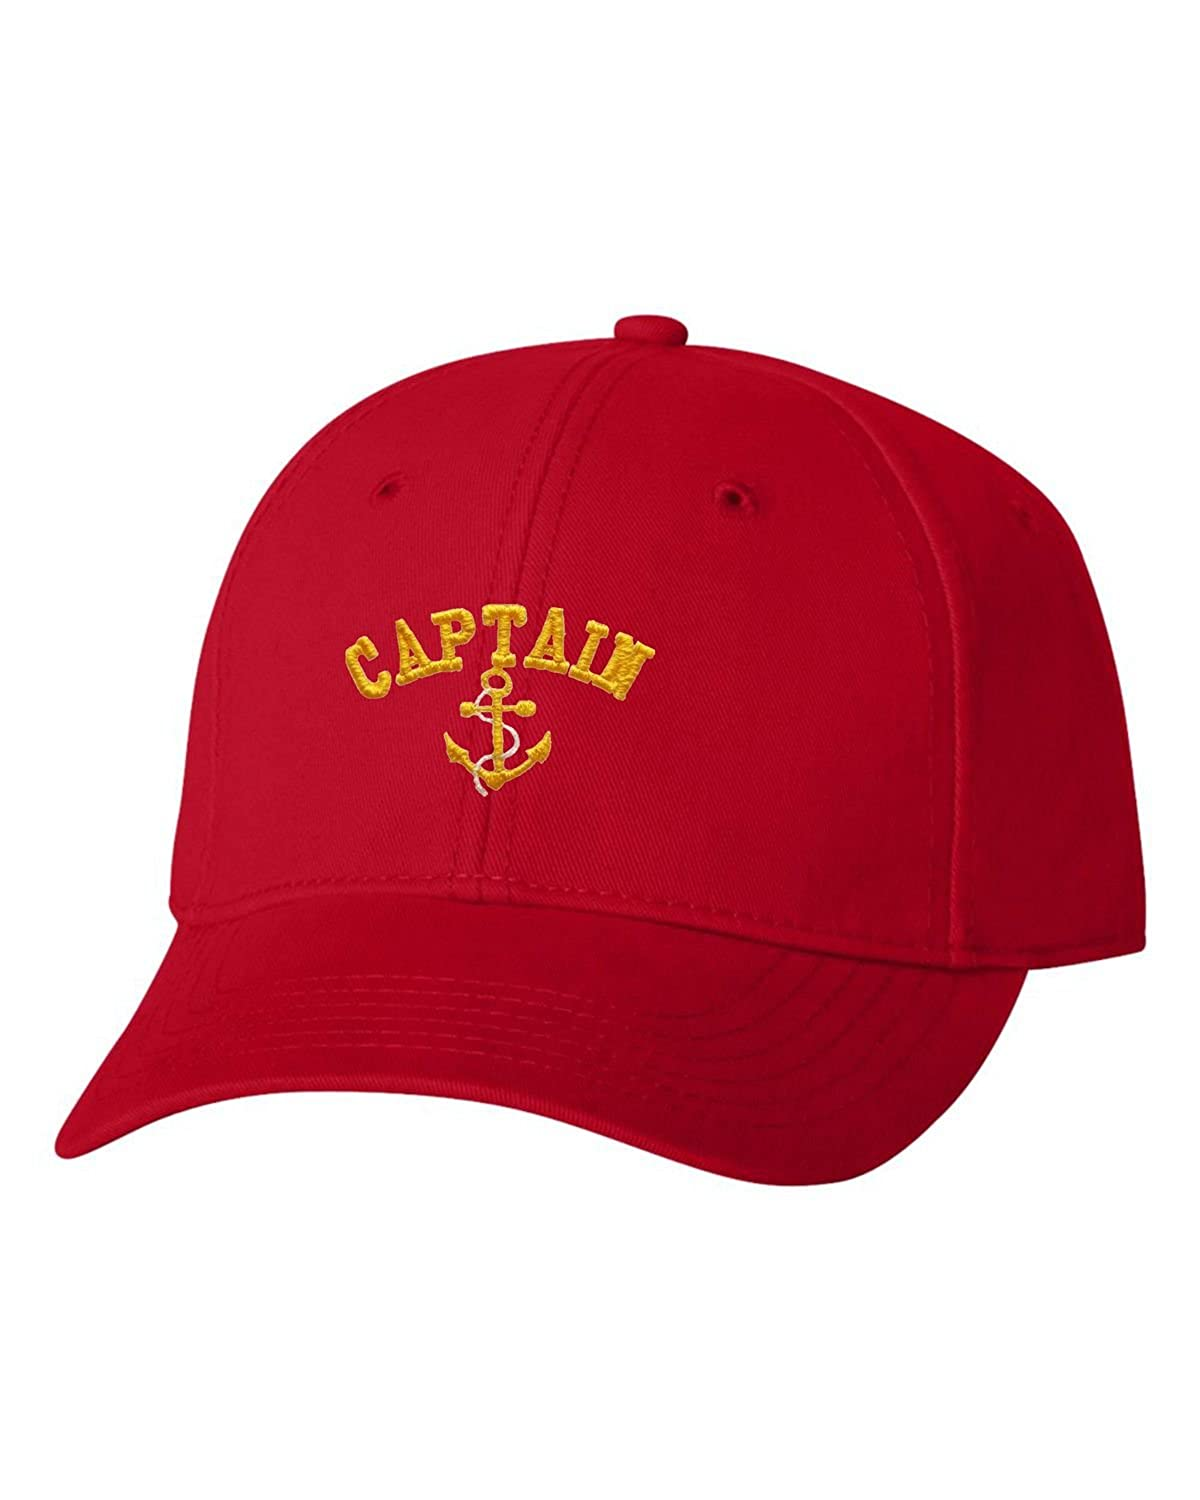 Go All Out Adult Captain with Anchor Embroidered Dad Hat Structured Cap CAPTAINHAT_SDC_BK1_ADJ